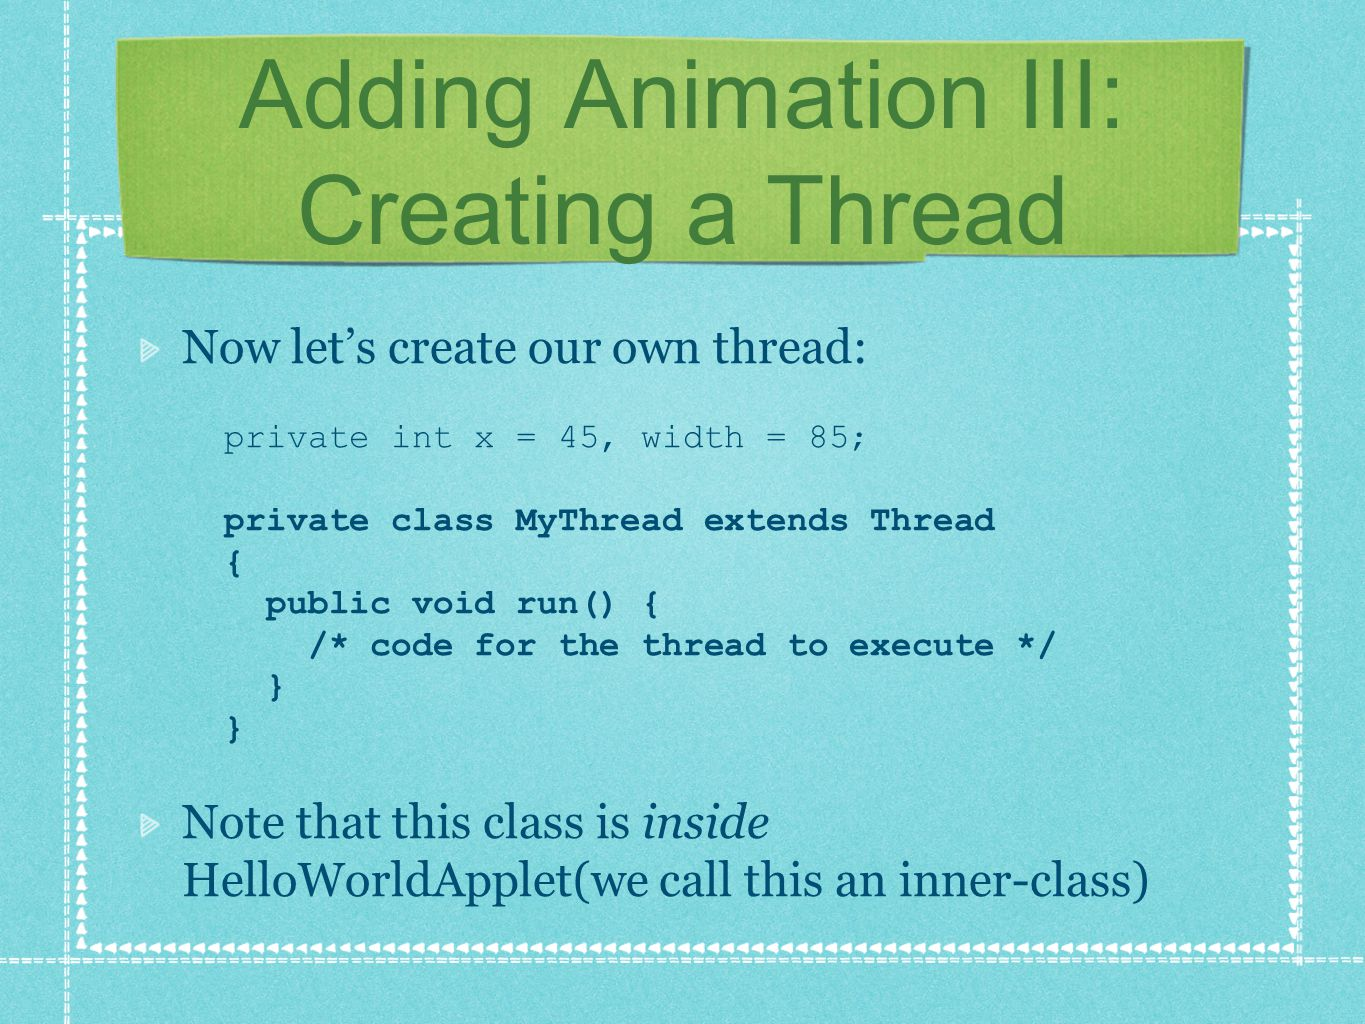 Adding Animation III: Creating a Thread Now let's create our own thread: private int x = 45, width = 85; private class MyThread extends Thread { public void run() { /* code for the thread to execute */ } } Note that this class is inside HelloWorldApplet(we call this an inner-class)